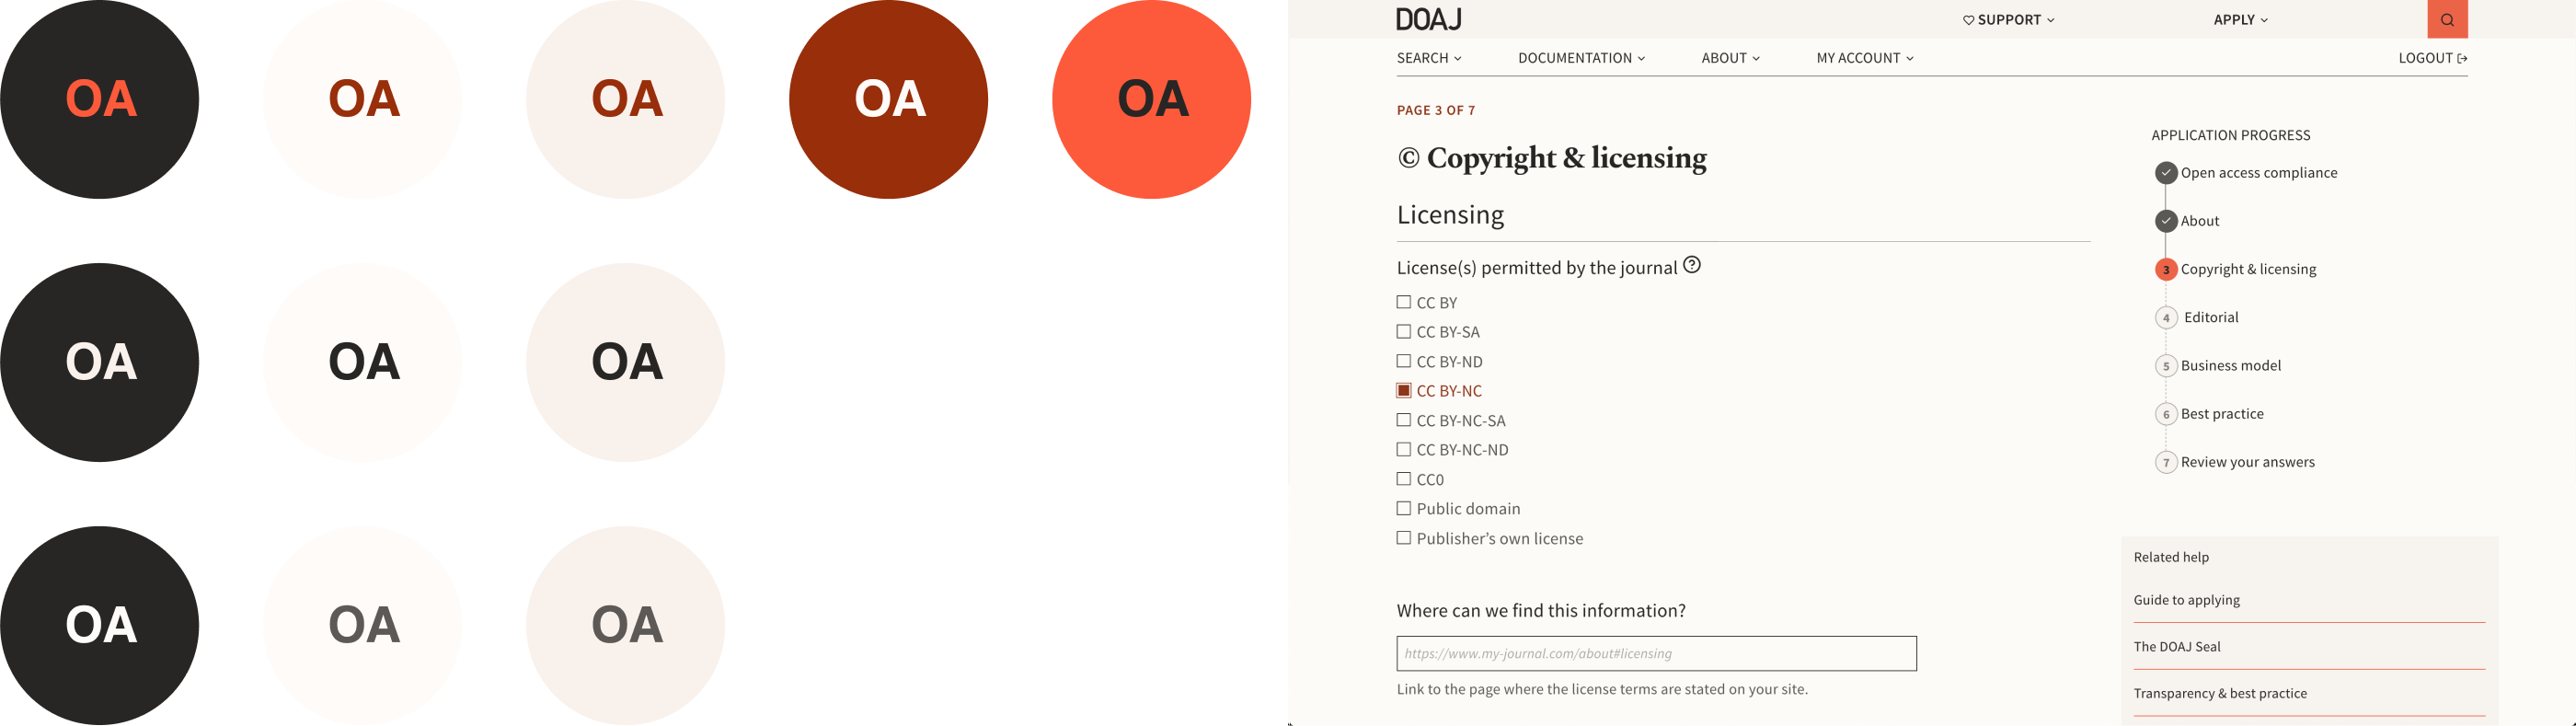 "Left side of picture shows ten accessible combinations for text on background colours in shades of orange, black, and beige. Right side shows the ""Copyright & Licensing"" section of the new application form using the accessible colour palette. The first question asks for license(s) permitted by the journal, followed by checkboxes for Creative Commons licenses."